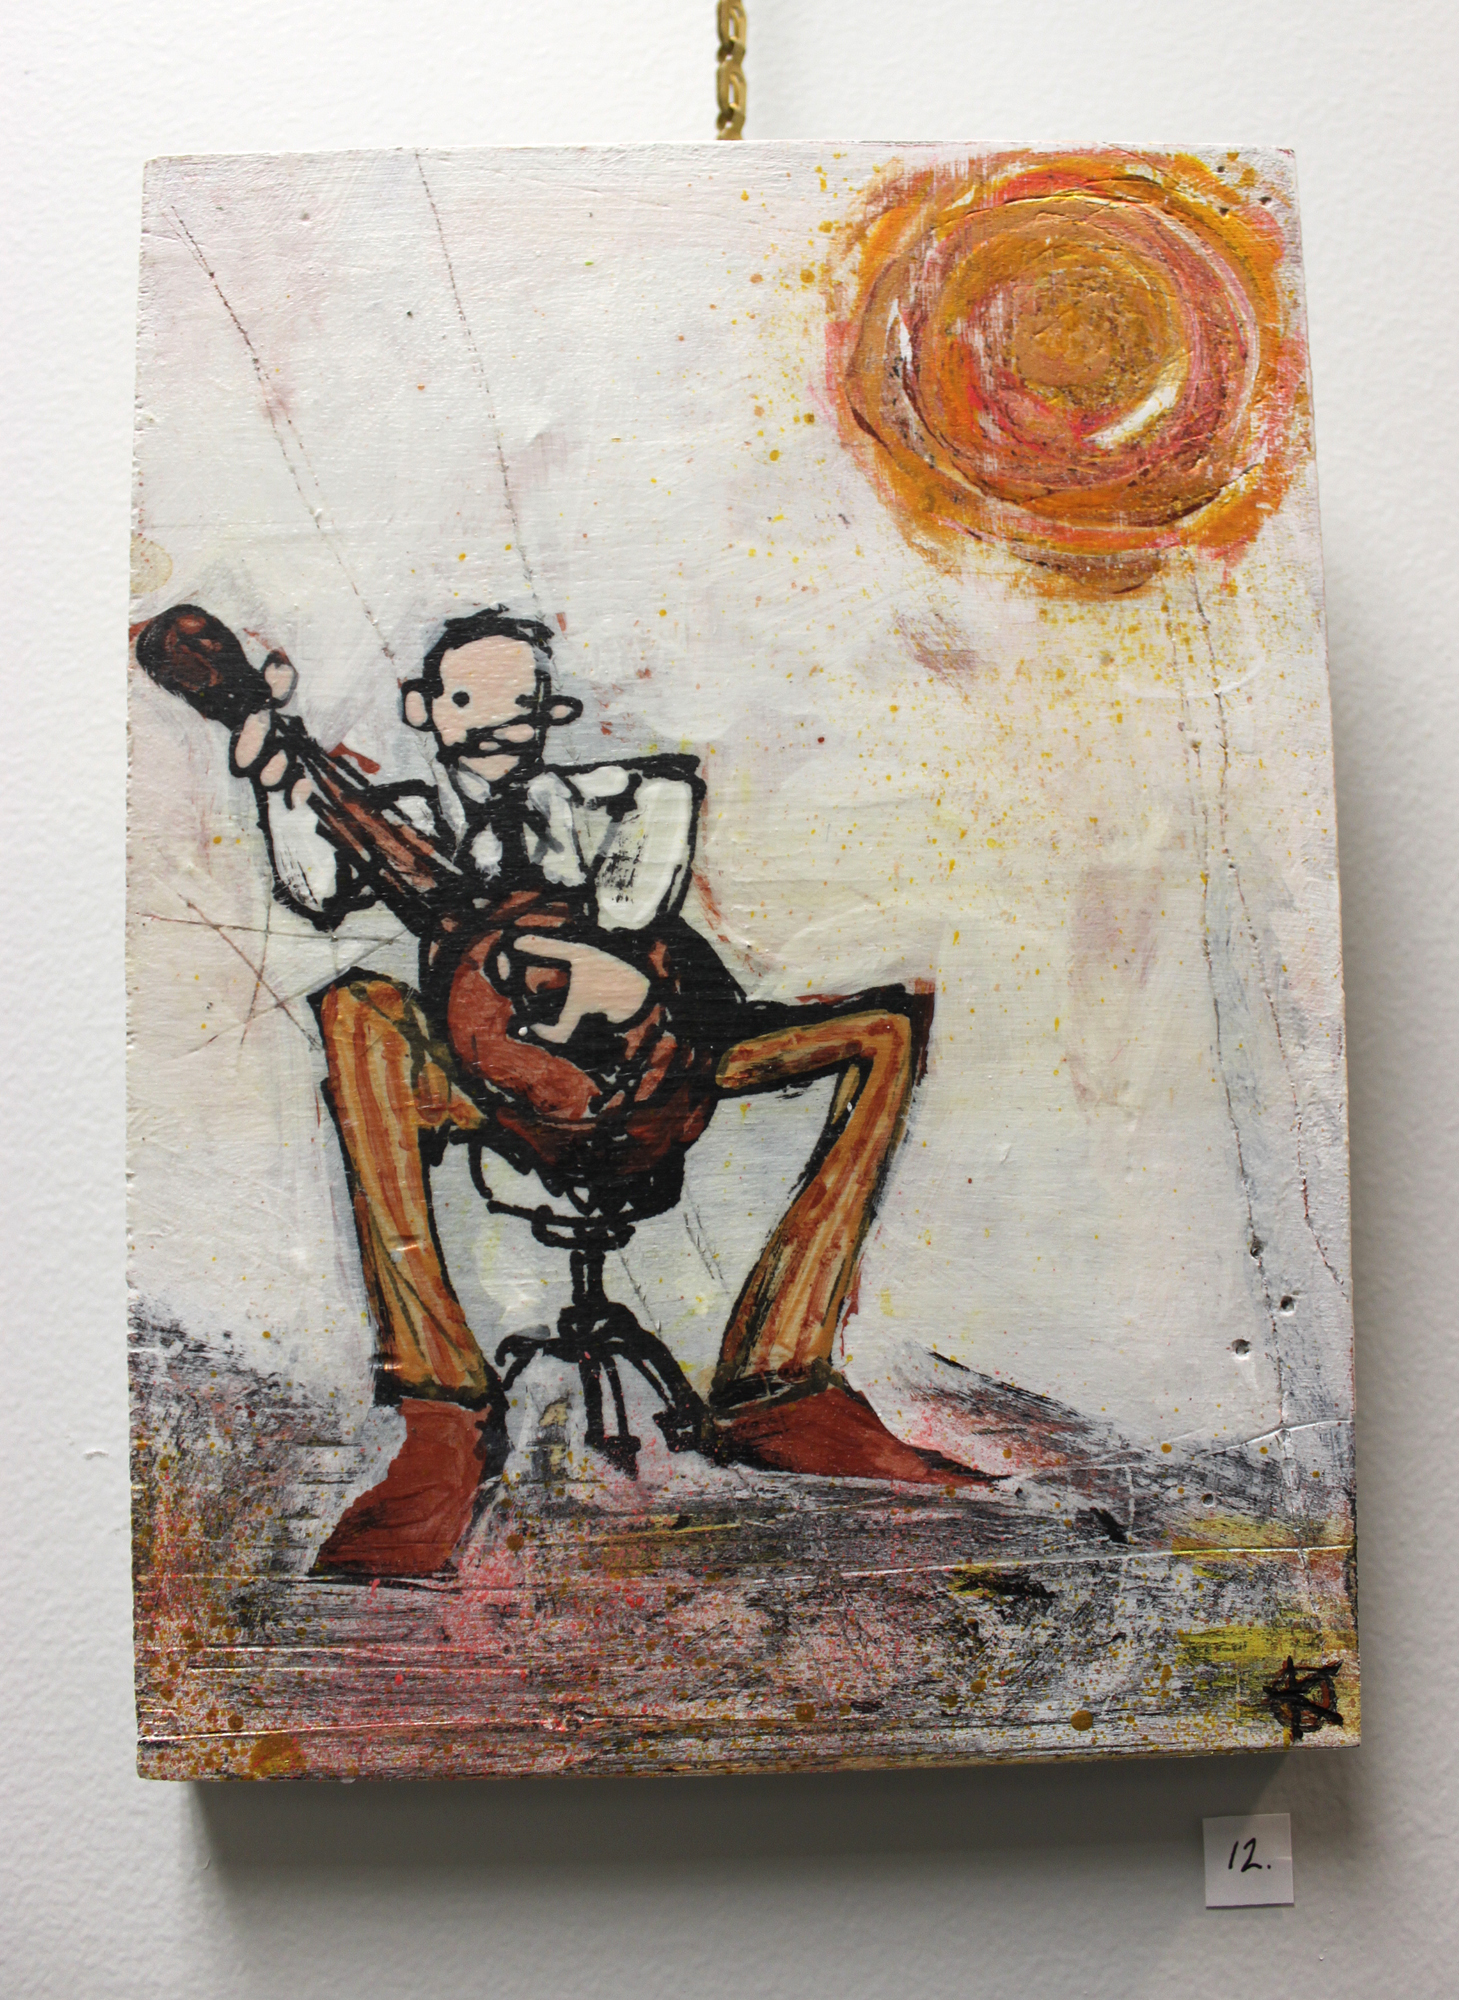 Sun Song, Acrylic on Wood Panel, 2014 - Kent Smith, $150